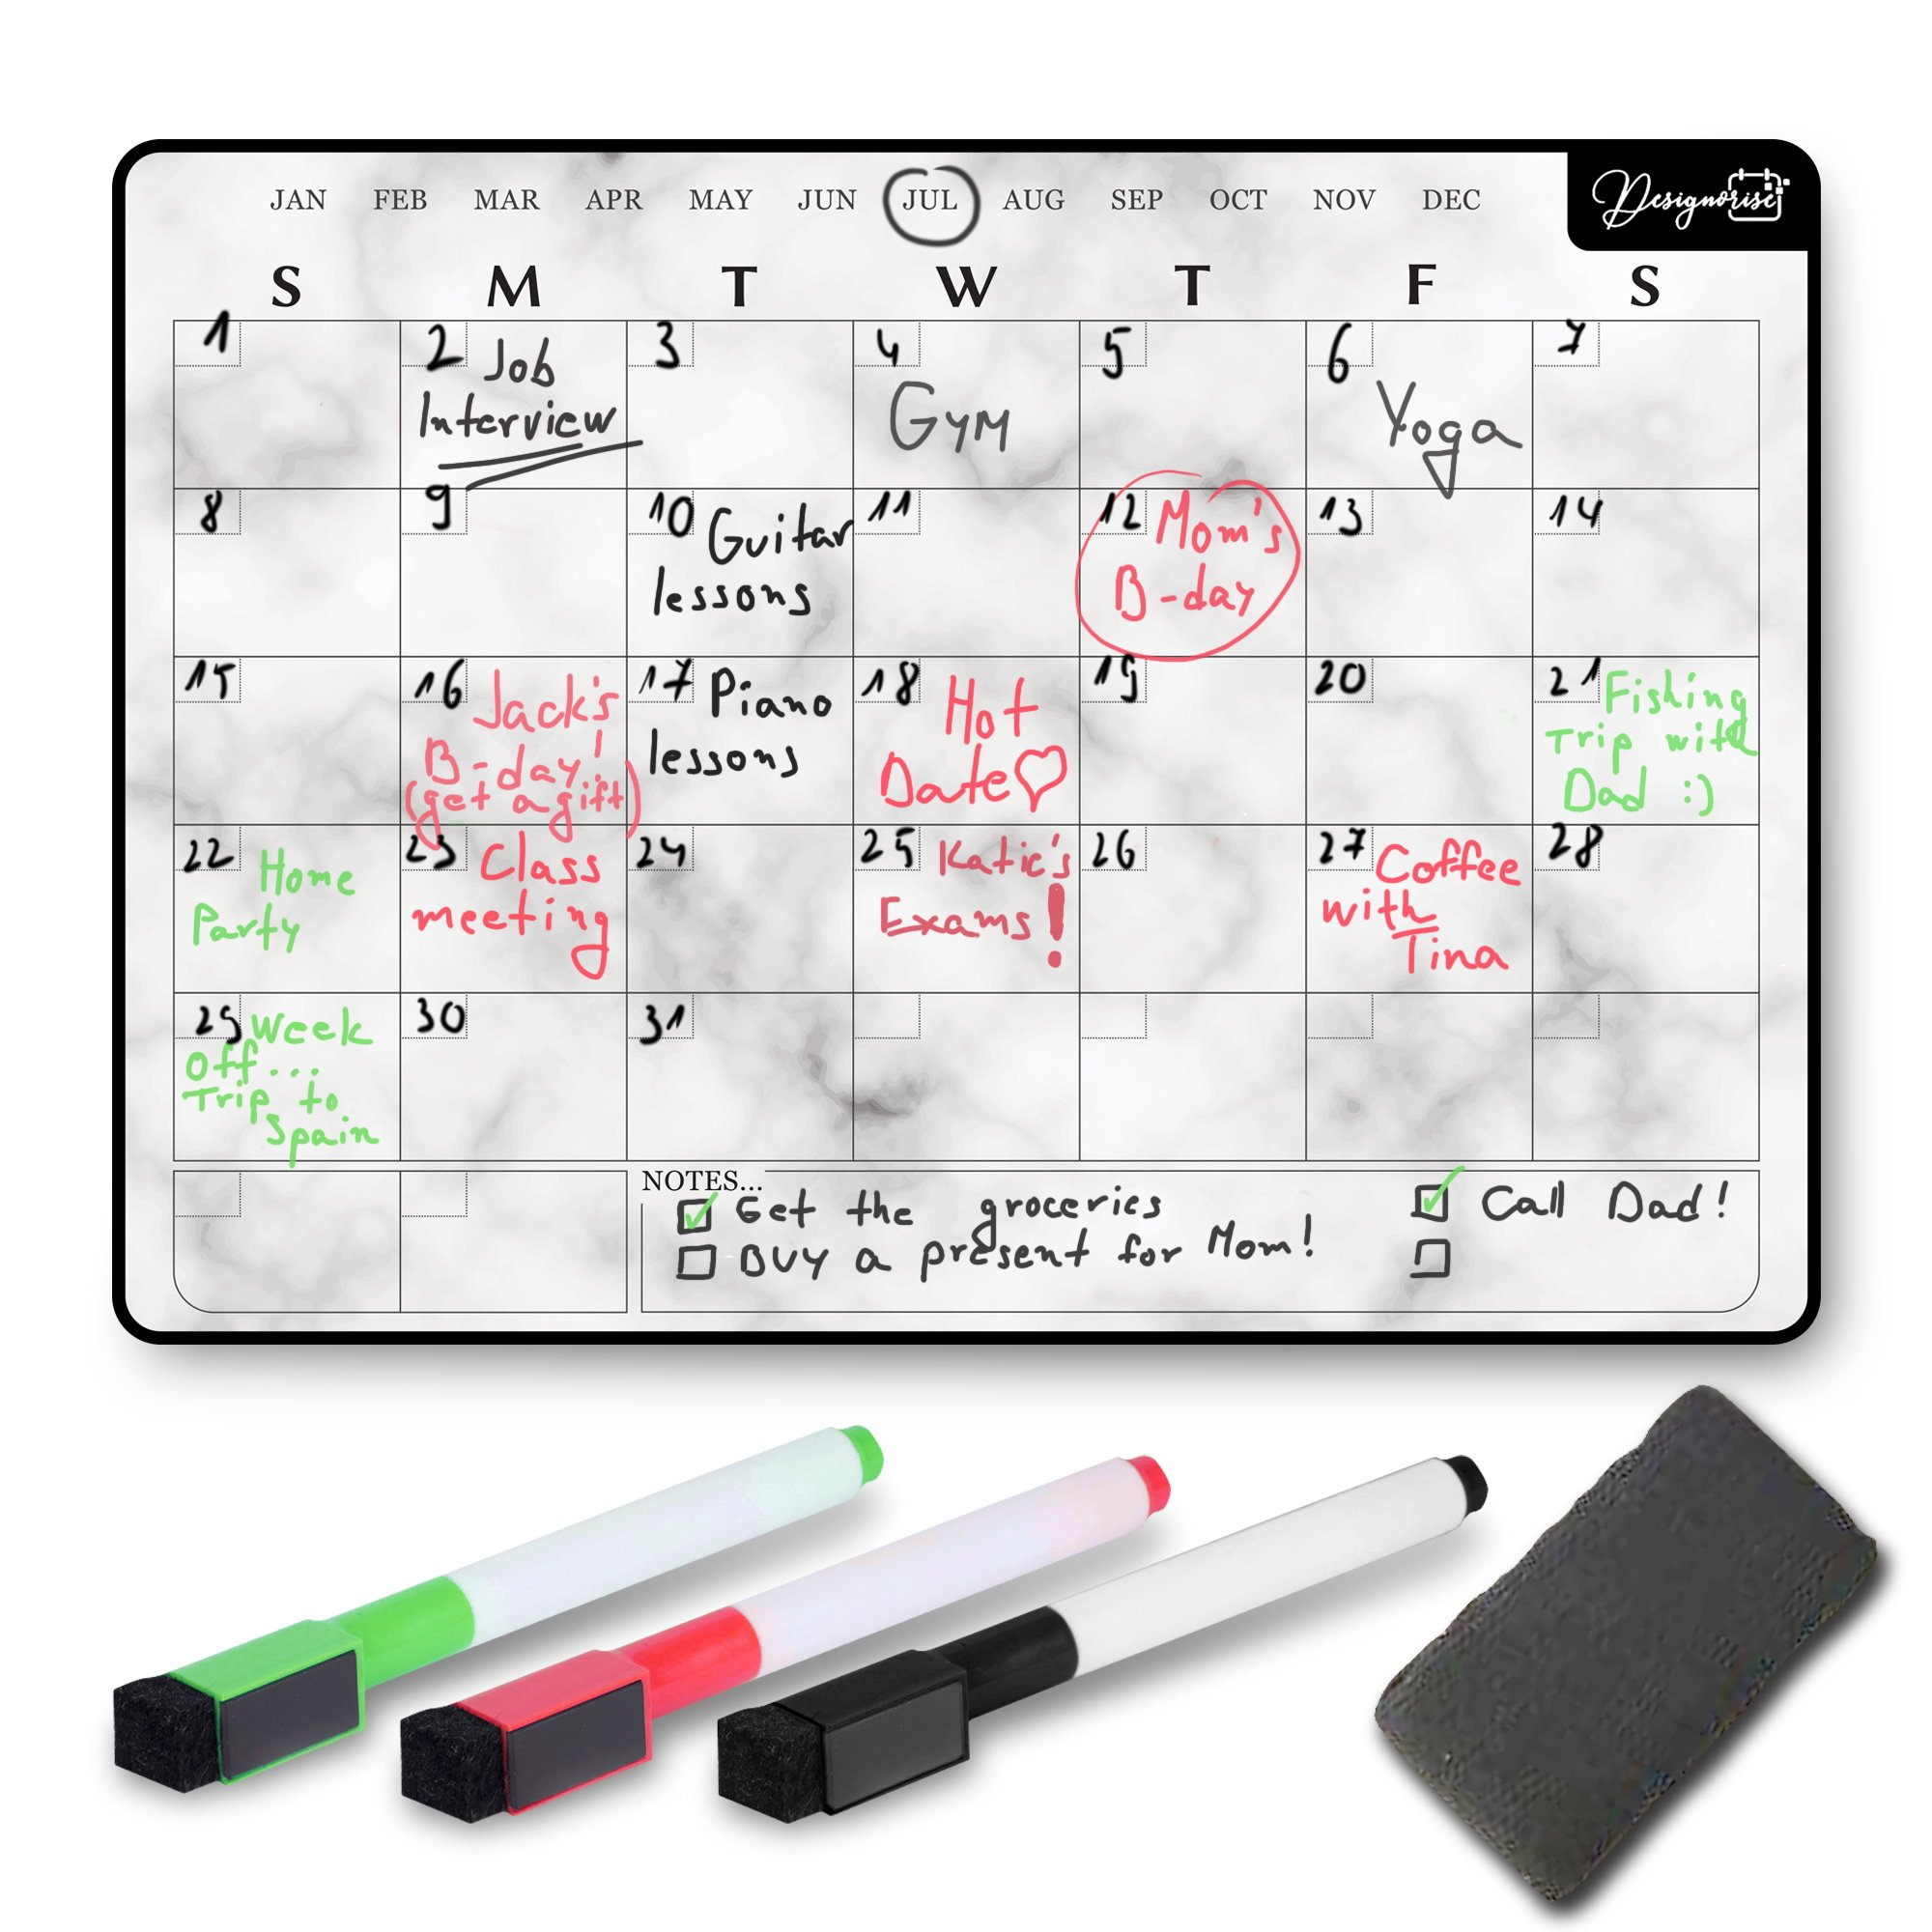 Designorize Marble Dry Erase Magnetic Calendar for Refrigerator with Markers and Eraser (5-Piece Set) Daily, Weekly, Monthly Organizer | Stain Resistant Surface | Home and Office Organization